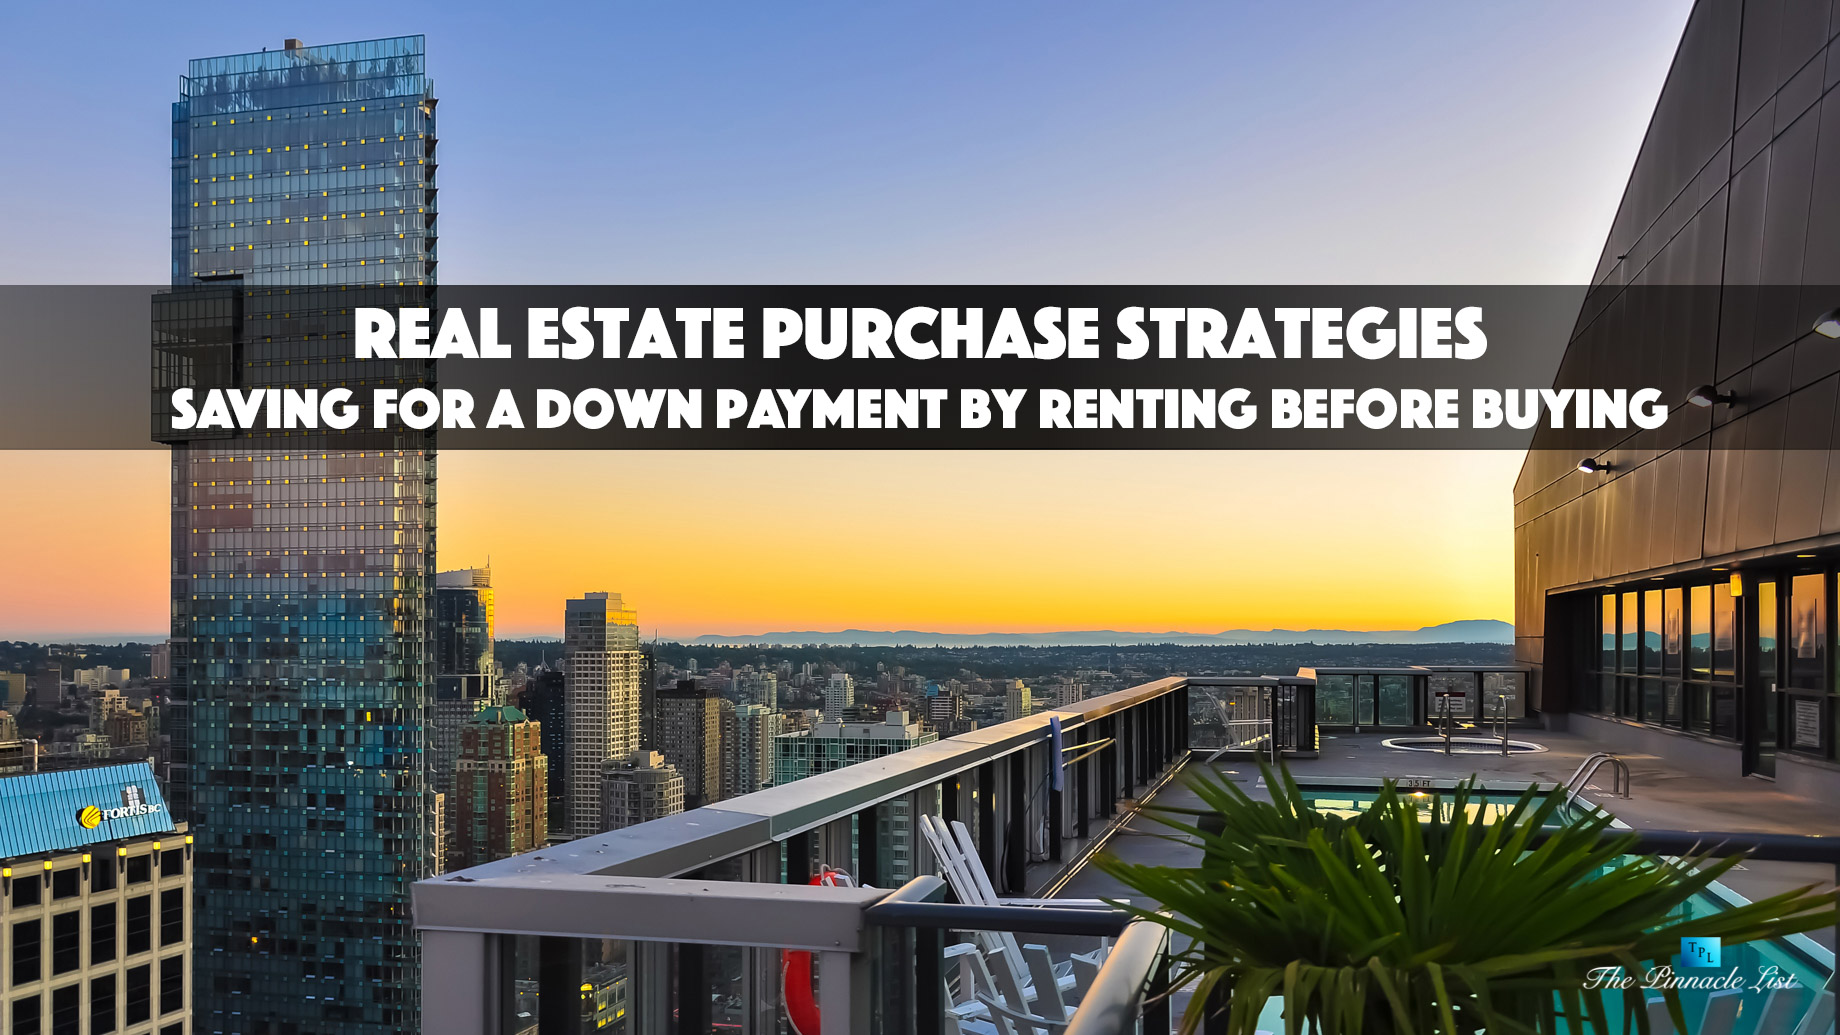 Real Estate Purchase Strategies - Saving for a Down Payment by Renting Before Buying